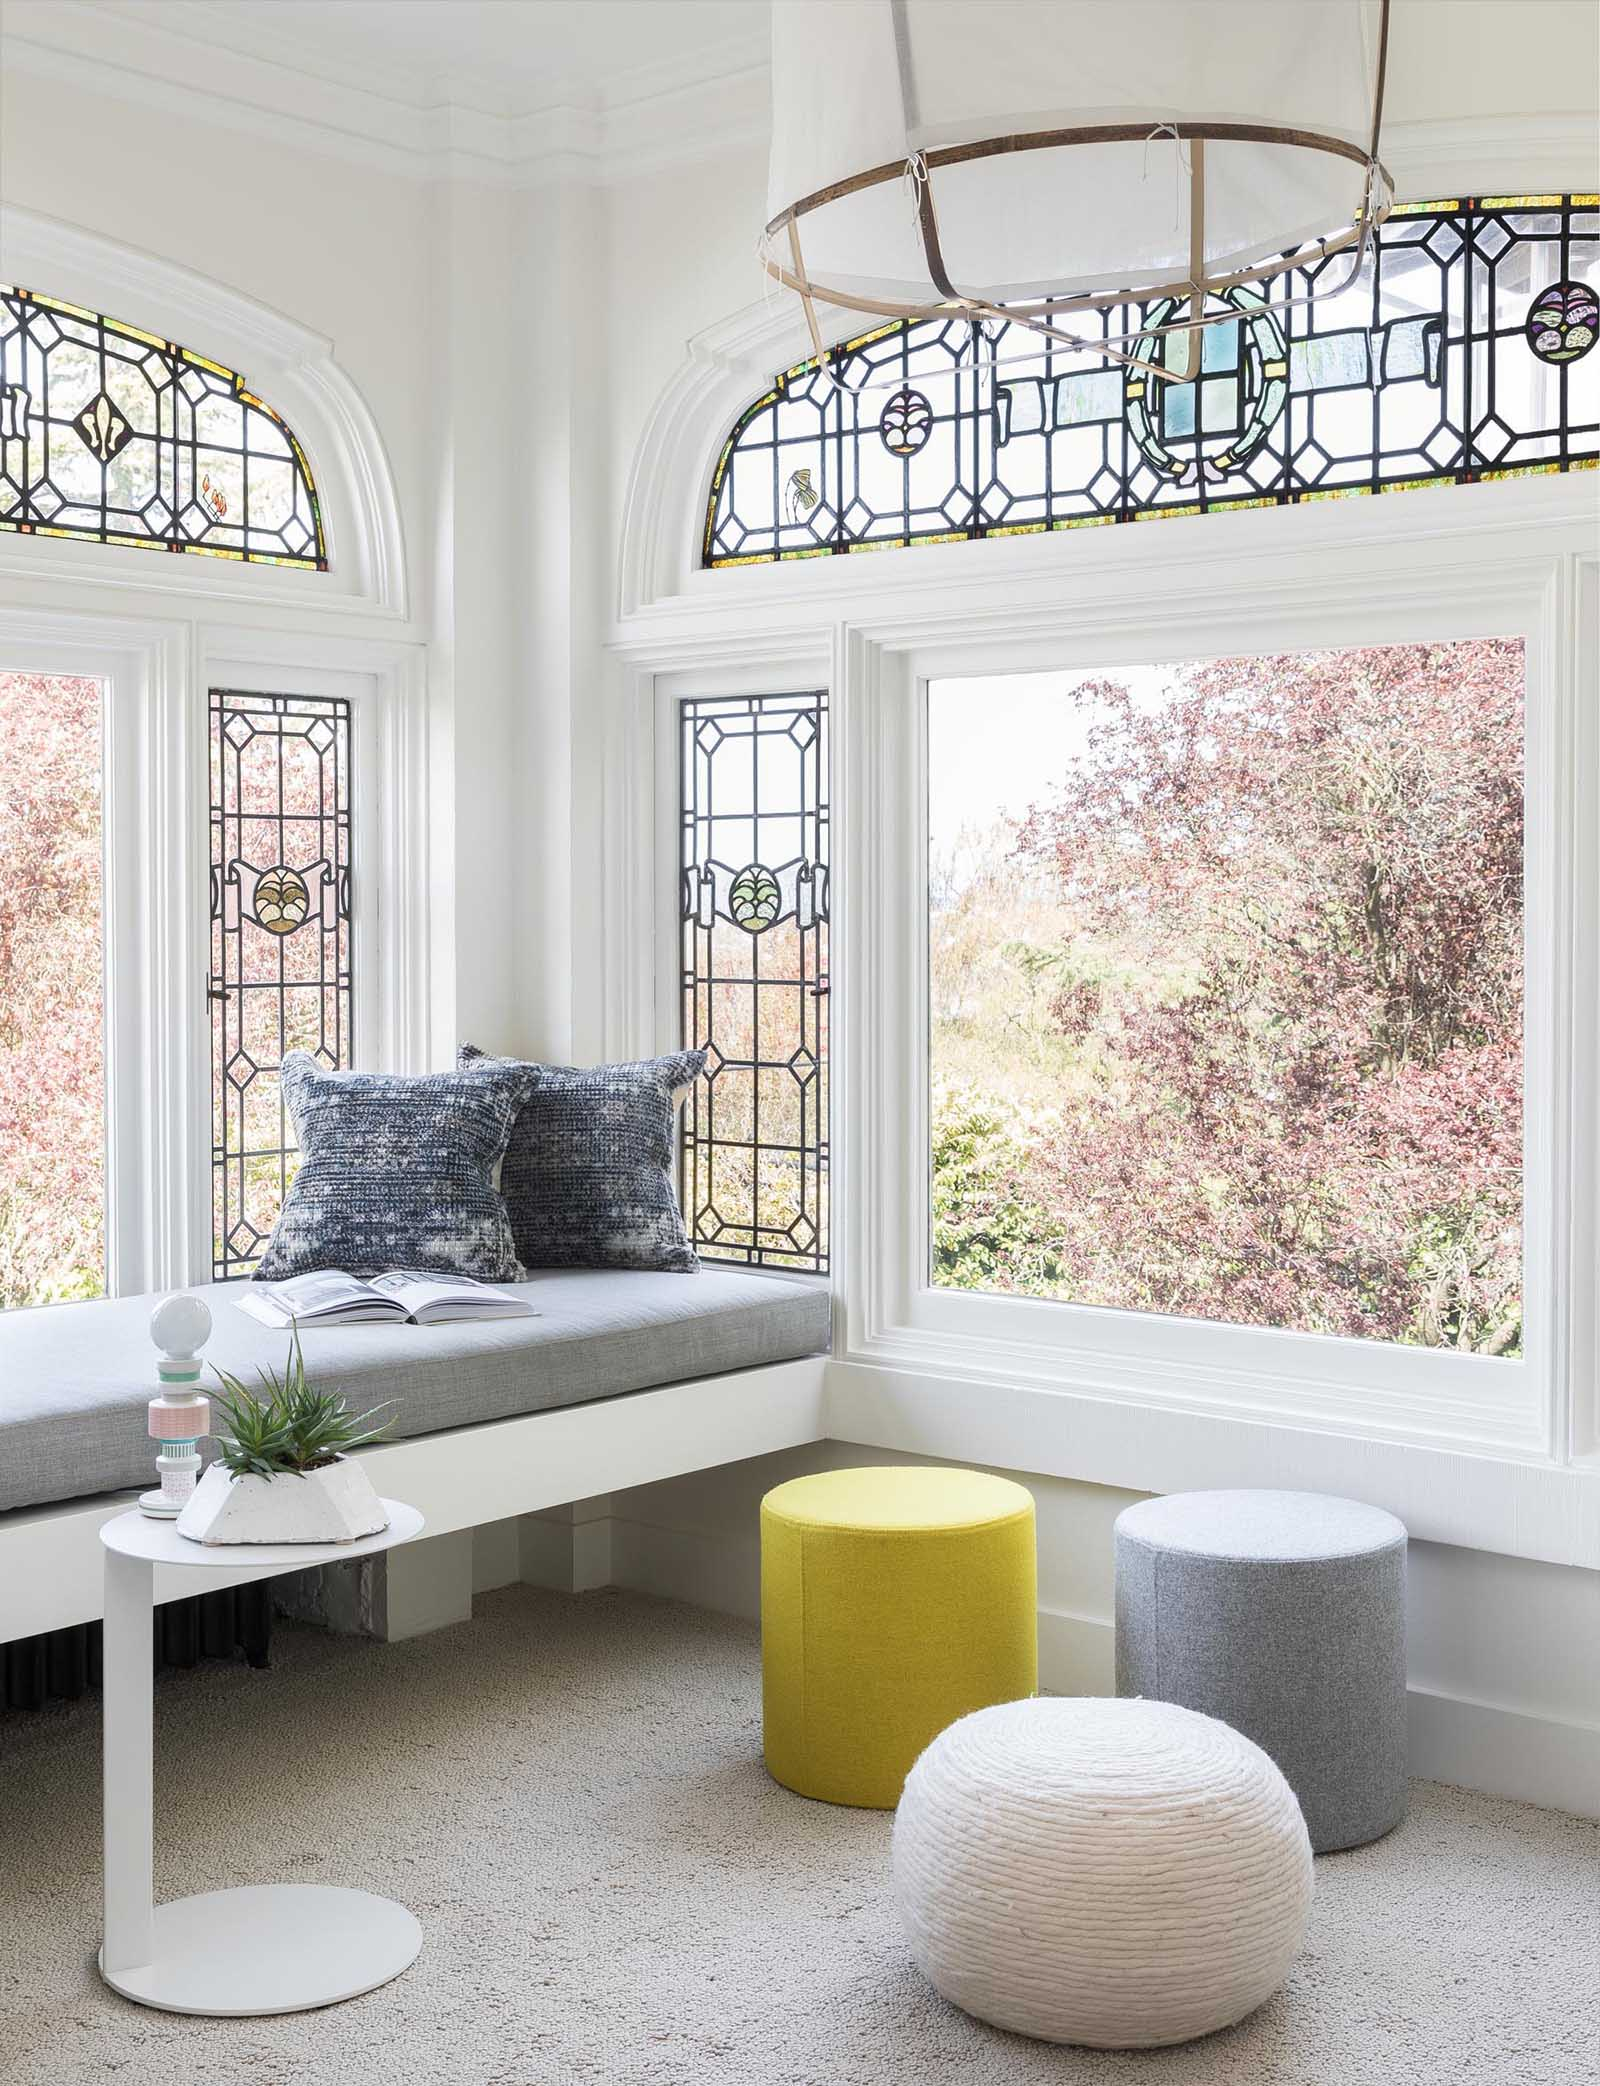 A built-in window bench adds seating and takes advantage of the garden views.